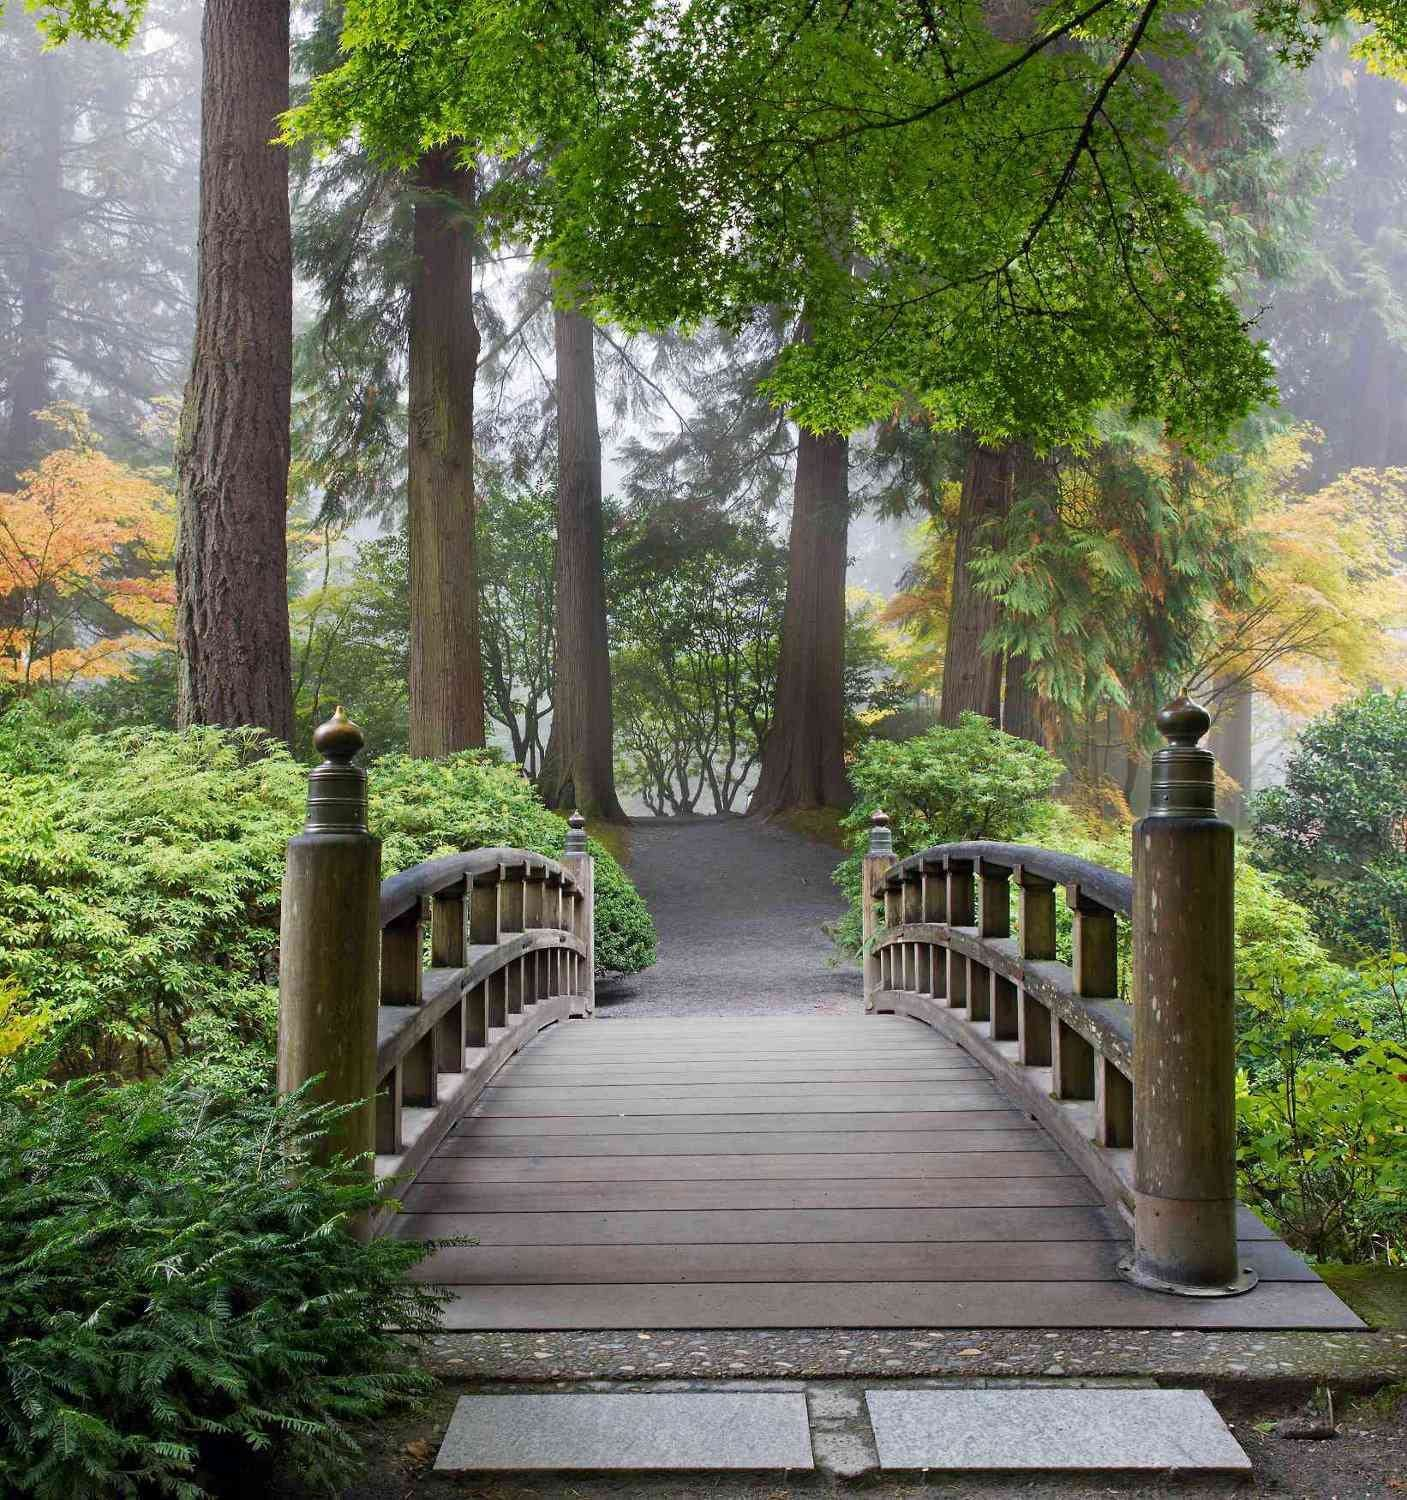 7.5-Feet wide by 8-Feet high. Prepasted wallpaper mural from a photo of: A Wooden Bridge in a Japanese Garden. Our murals are easy to hang remove and reuse (hang again) if you do as in our video.